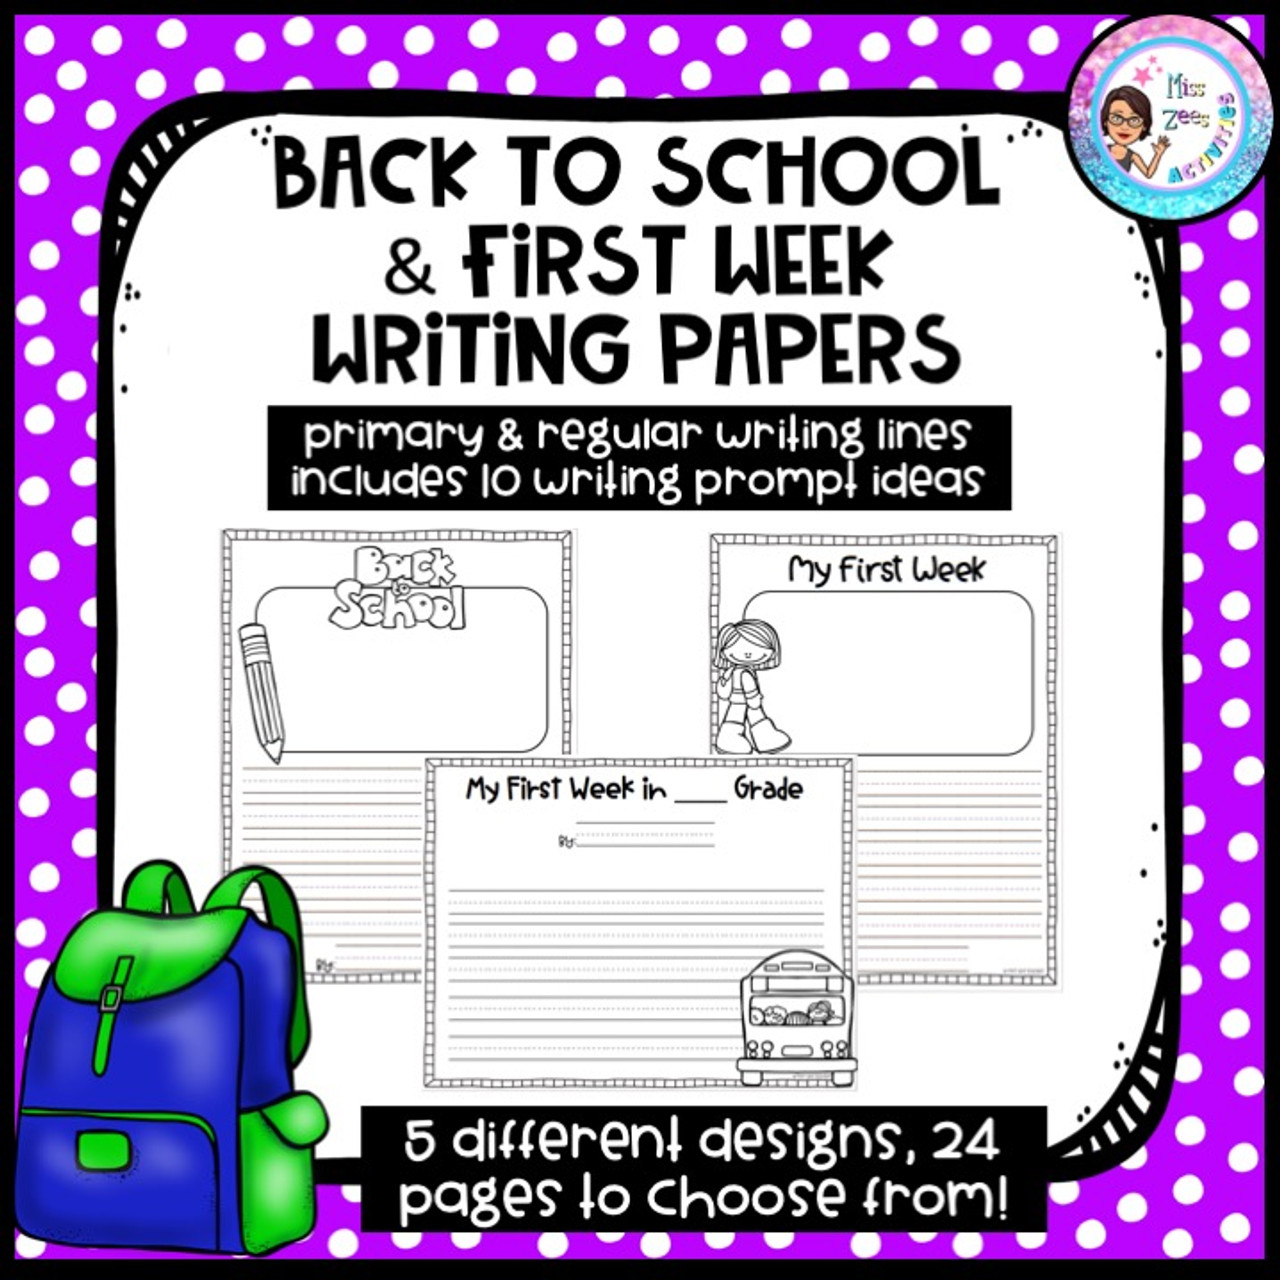 Back to School & First Week Writing Papers with Prompt Ideas